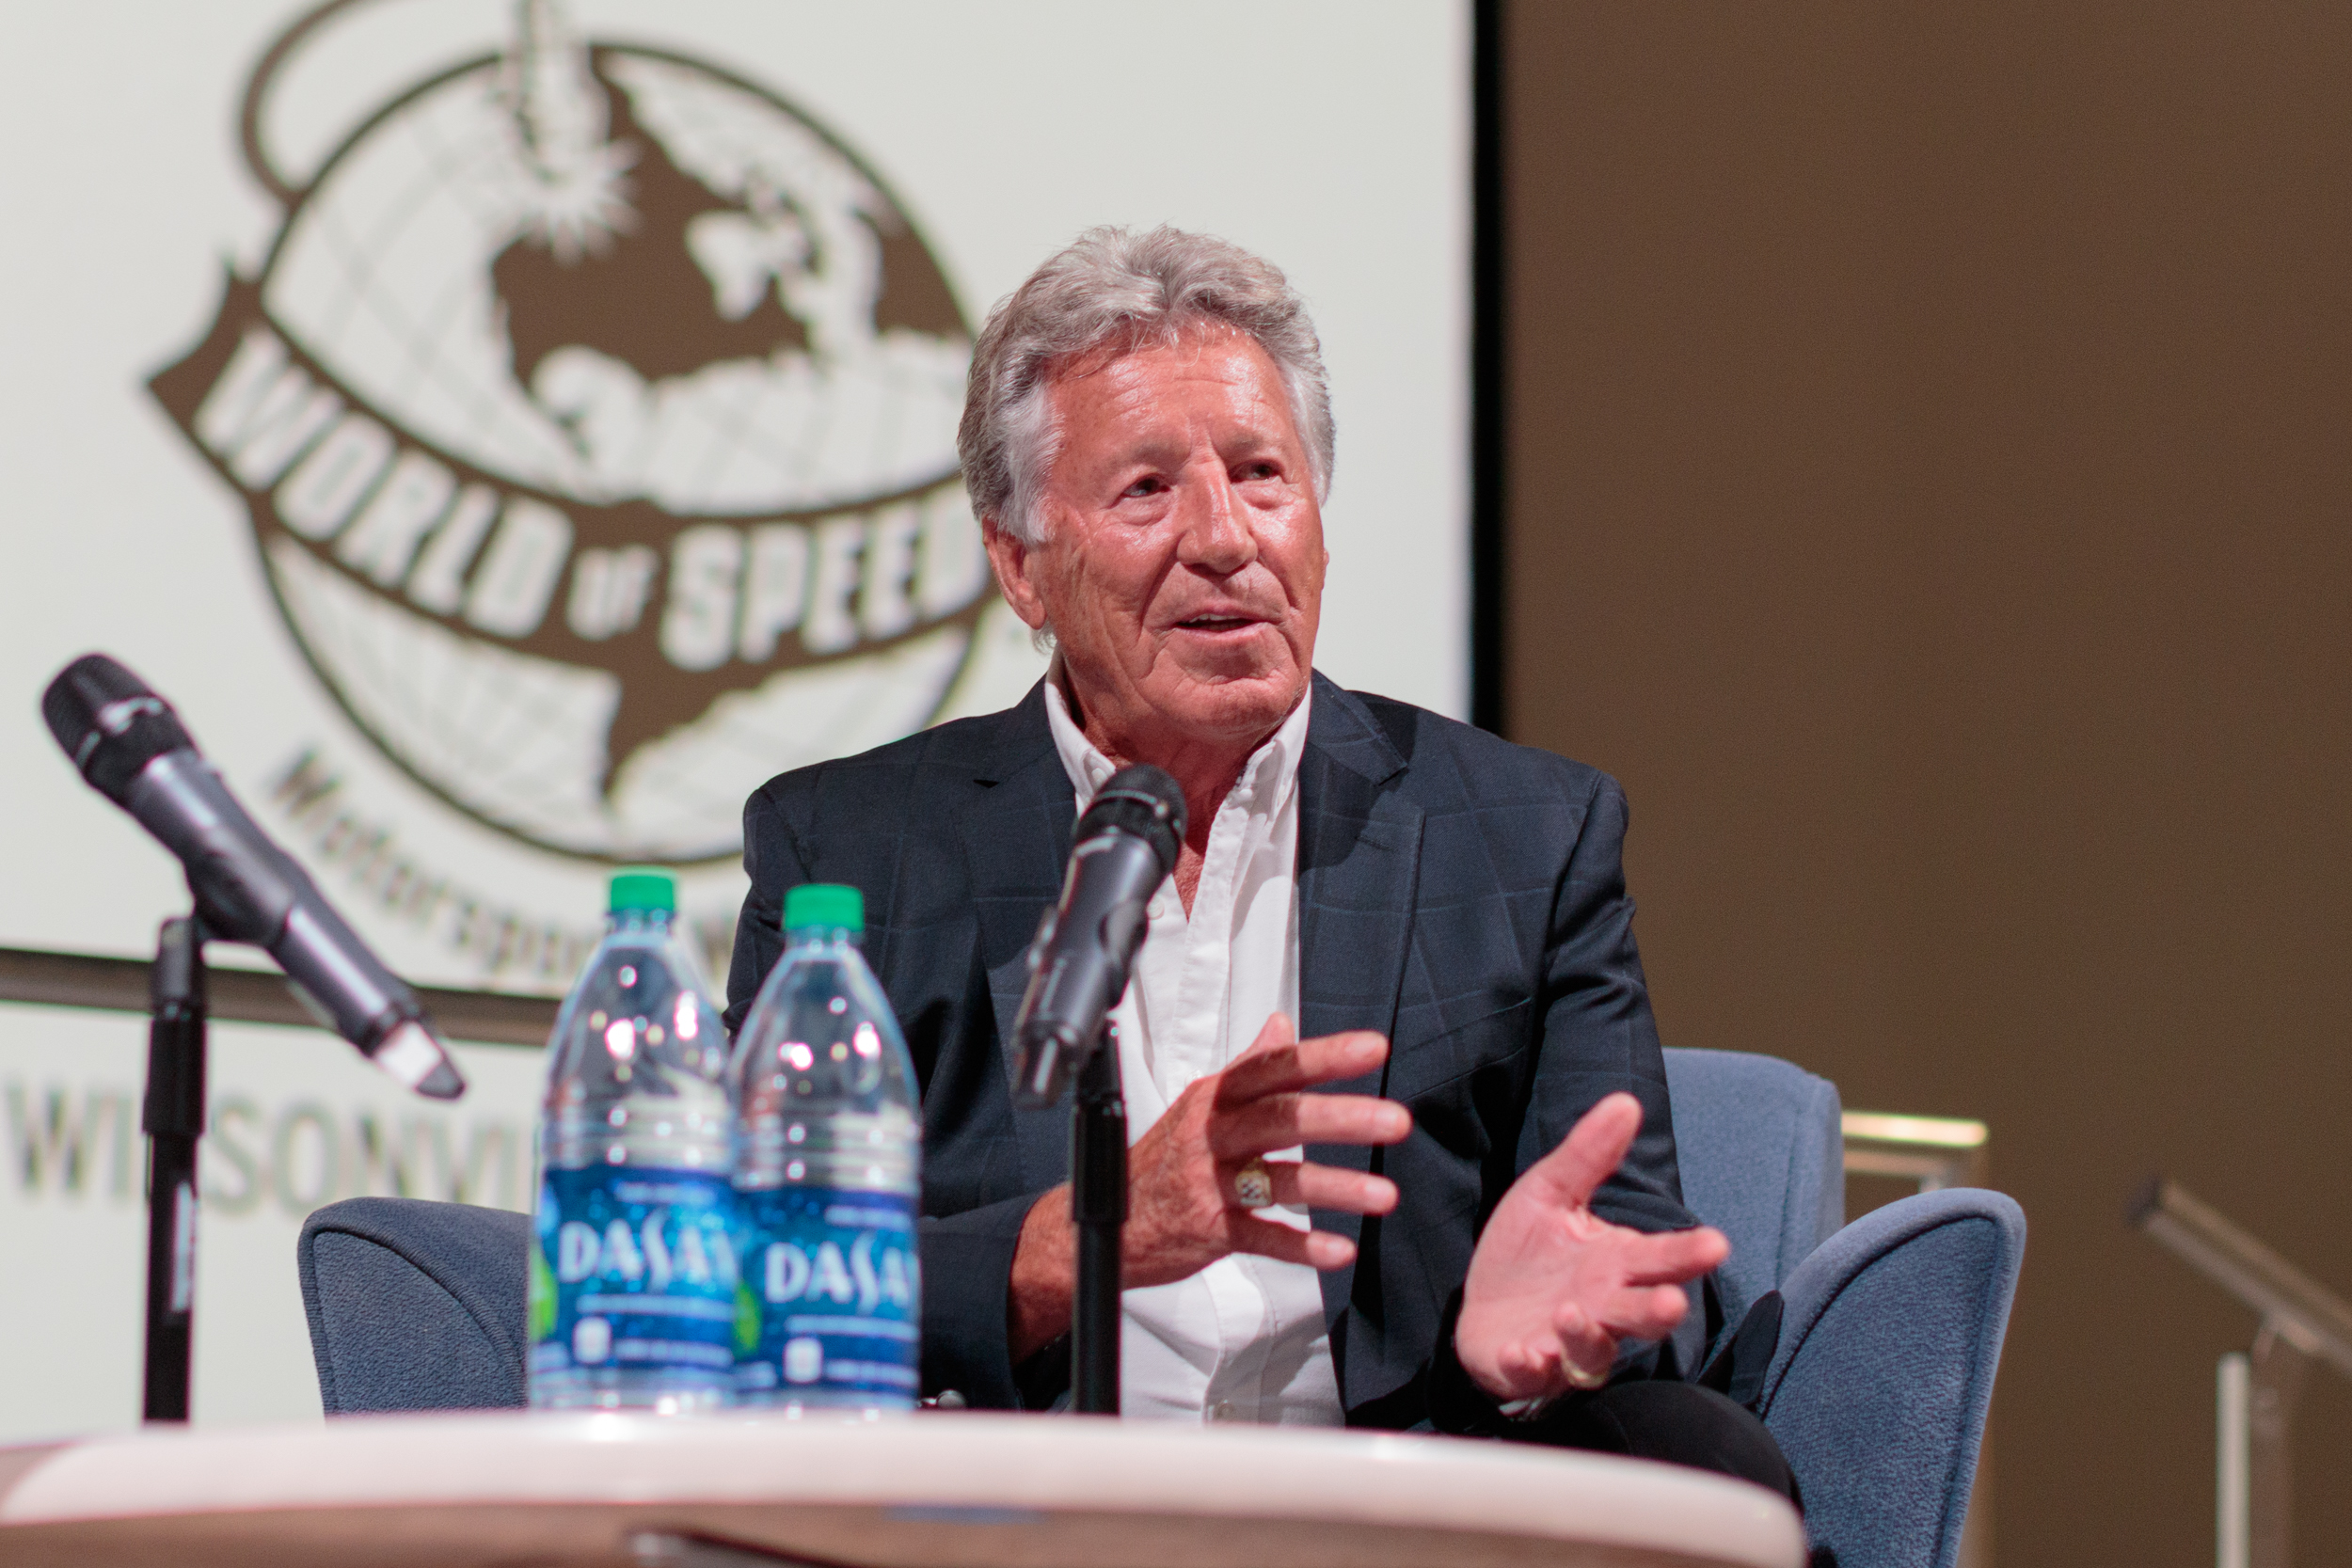 _E4A0562_An Evening with Mario Andretti_20190829.jpg